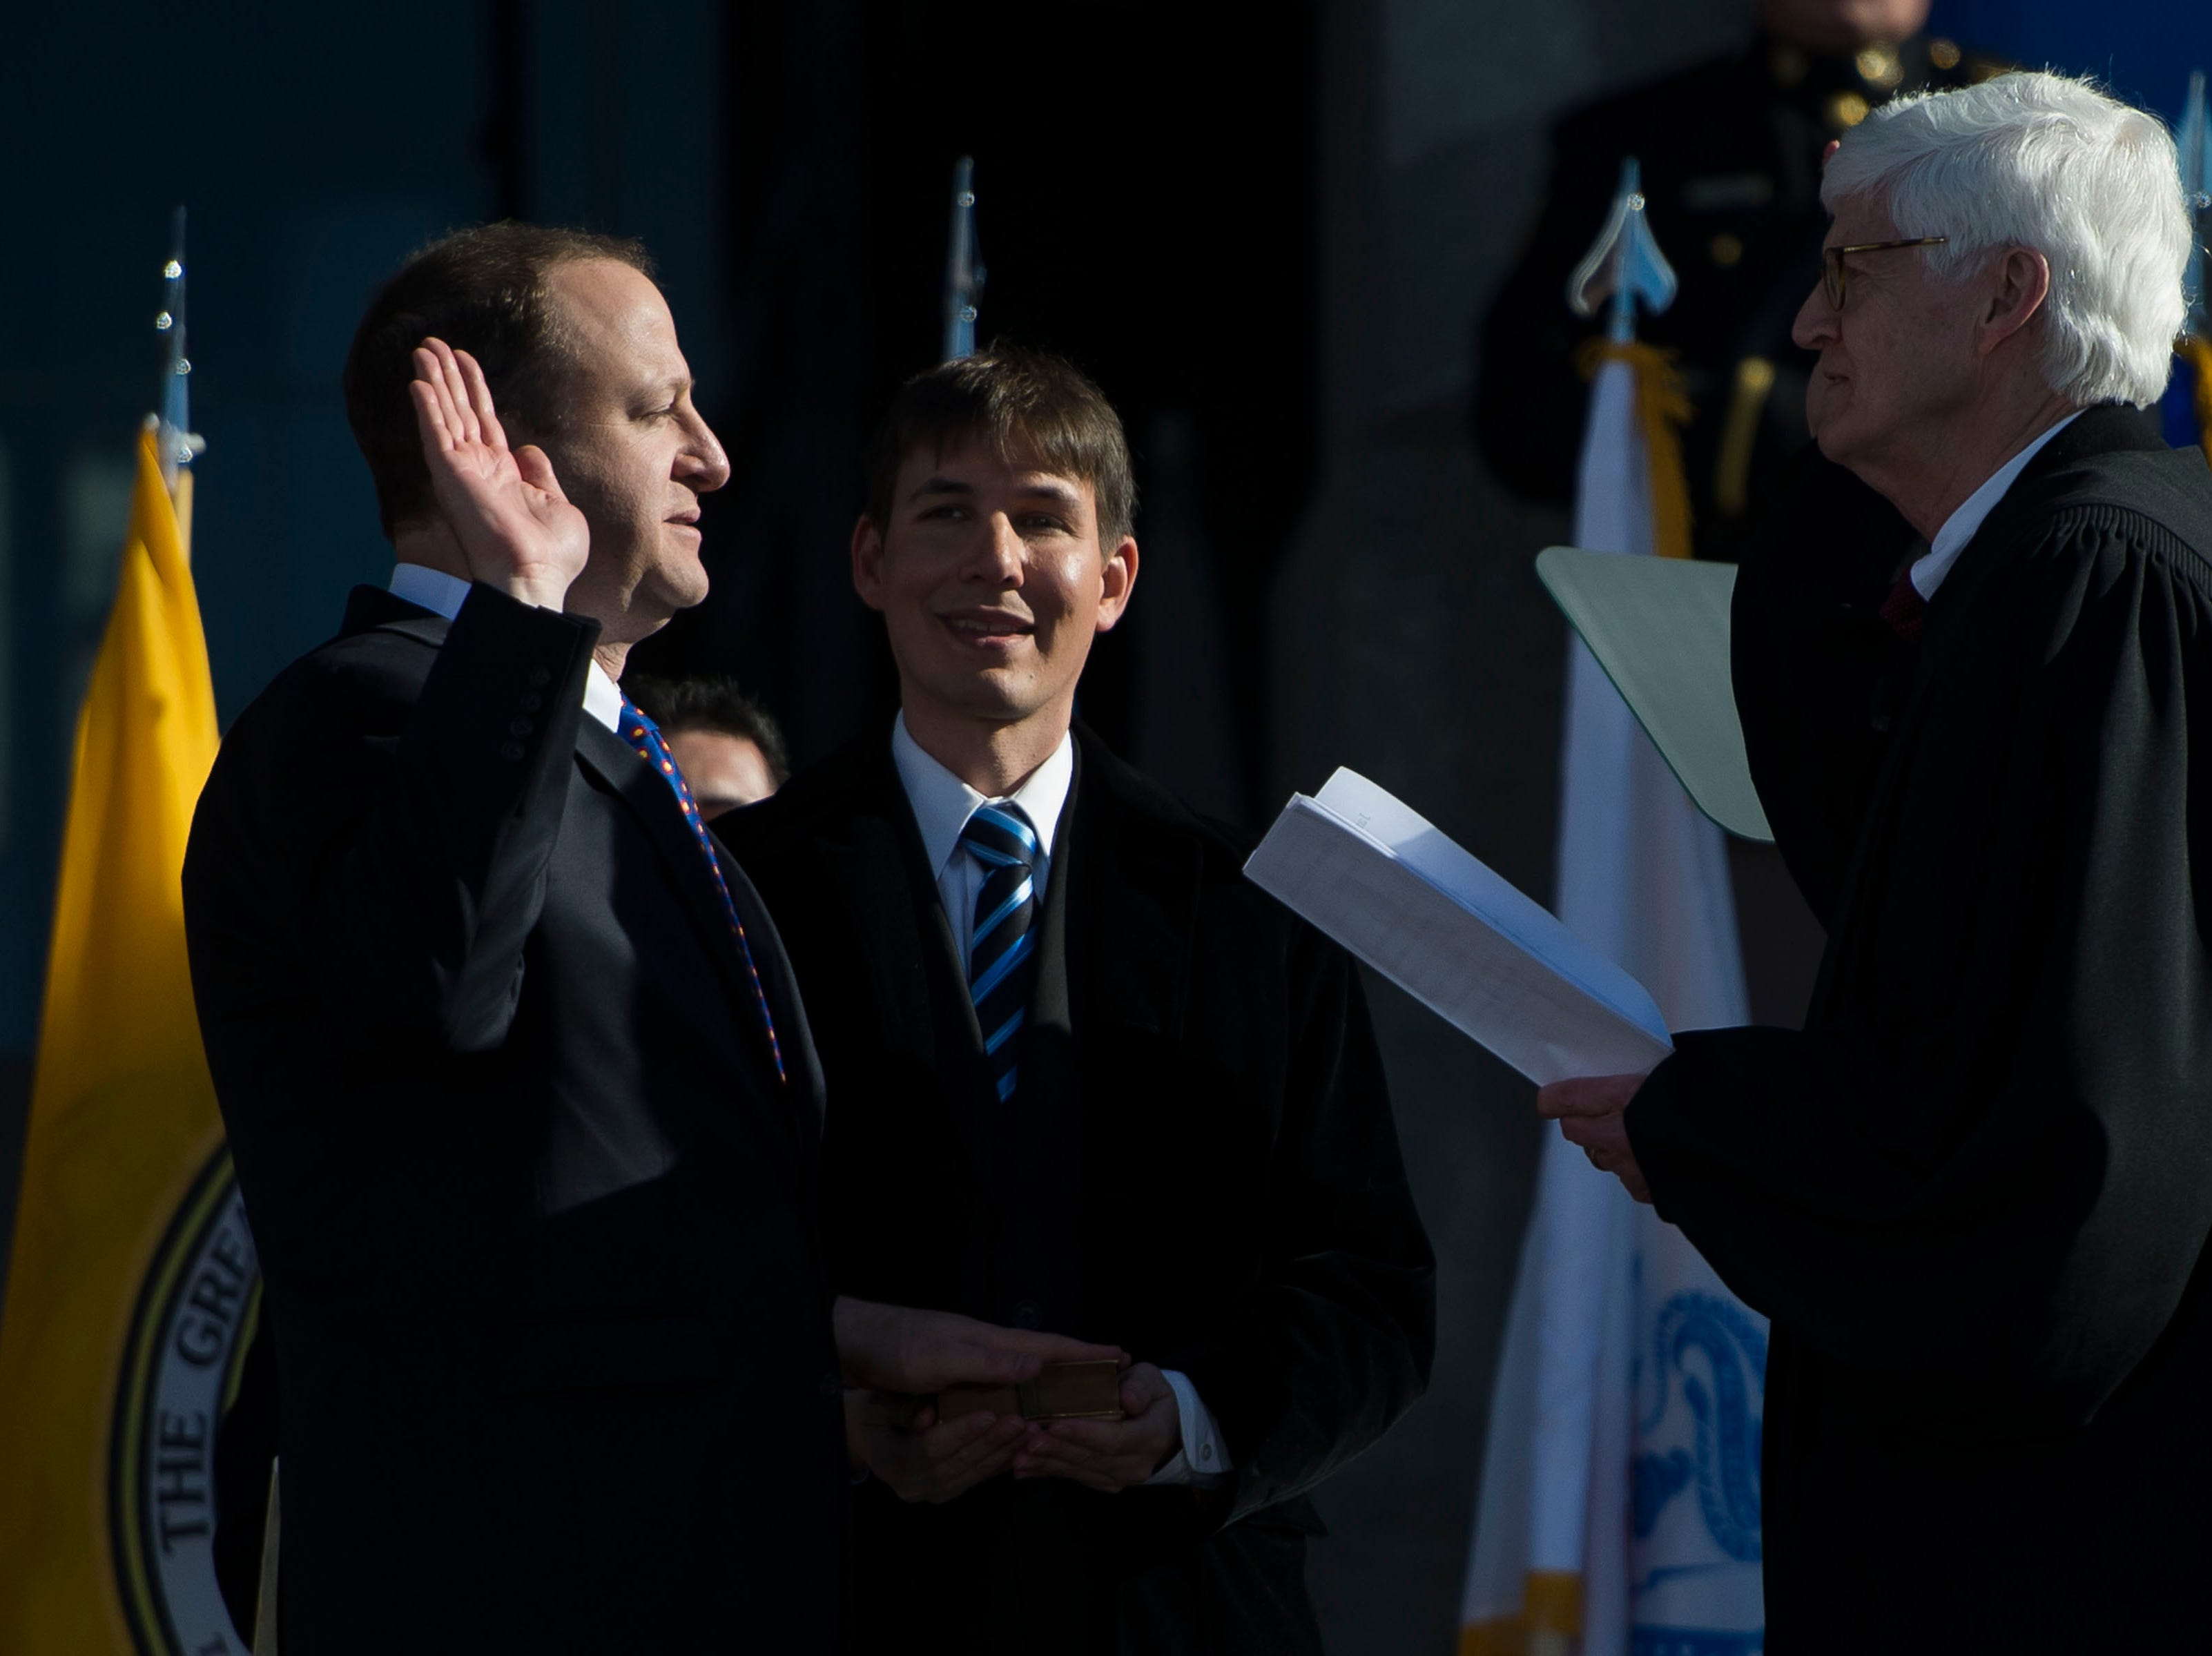 Governor Jared Polis, left, recites his oath of office, as directed by Chief Justice Nathan B. Coats, while Polis' partner Marlon Reis looks on during the inauguration of Colorado State Governor Jared Polis on Tuesday, Jan. 8, 2019, in front of the Colorado State Capital building in Denver, Colo.